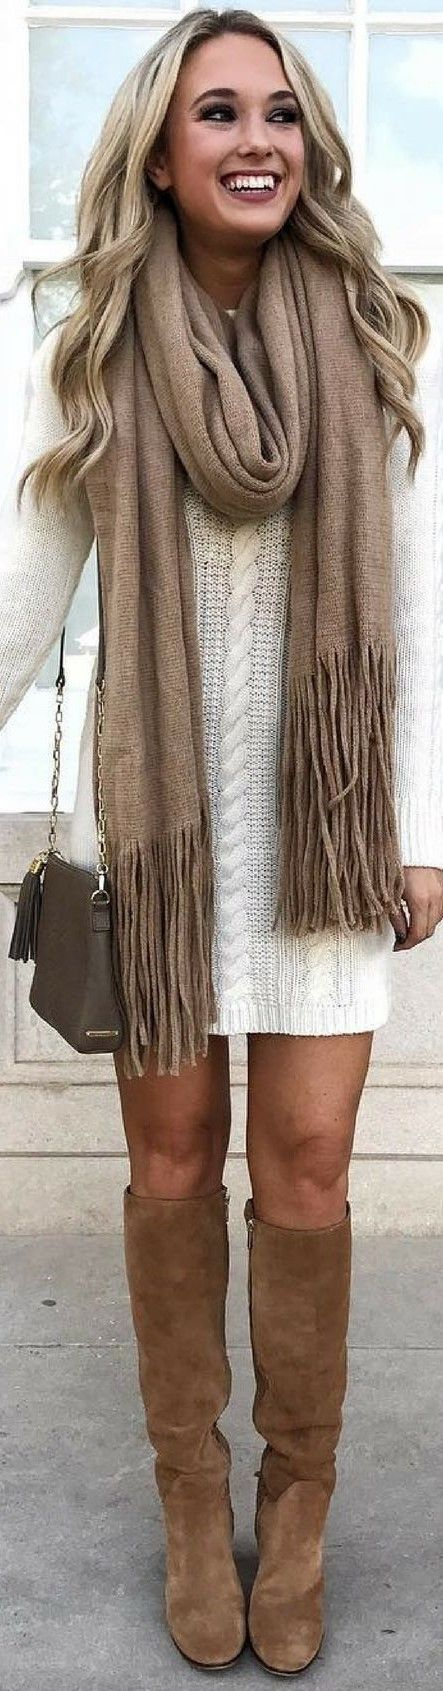 Cable knit sweater dress + scarf.